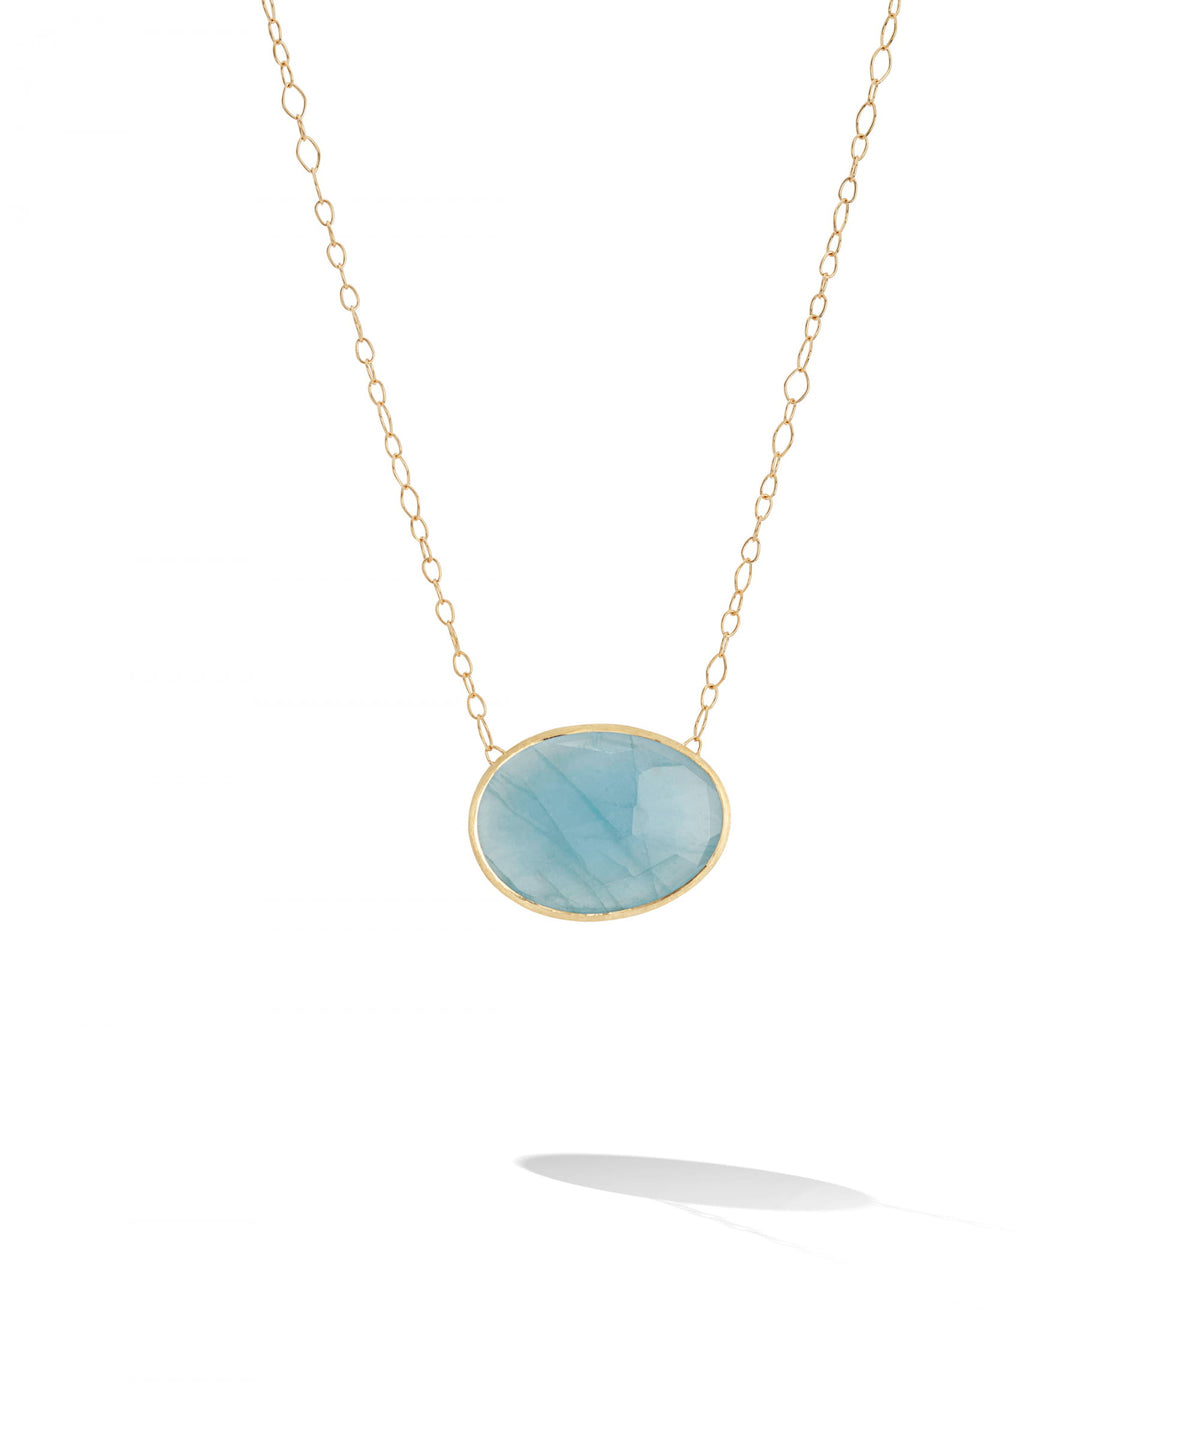 Lunaria Necklace in 18k Yellow Gold with Aquamarine Pendant